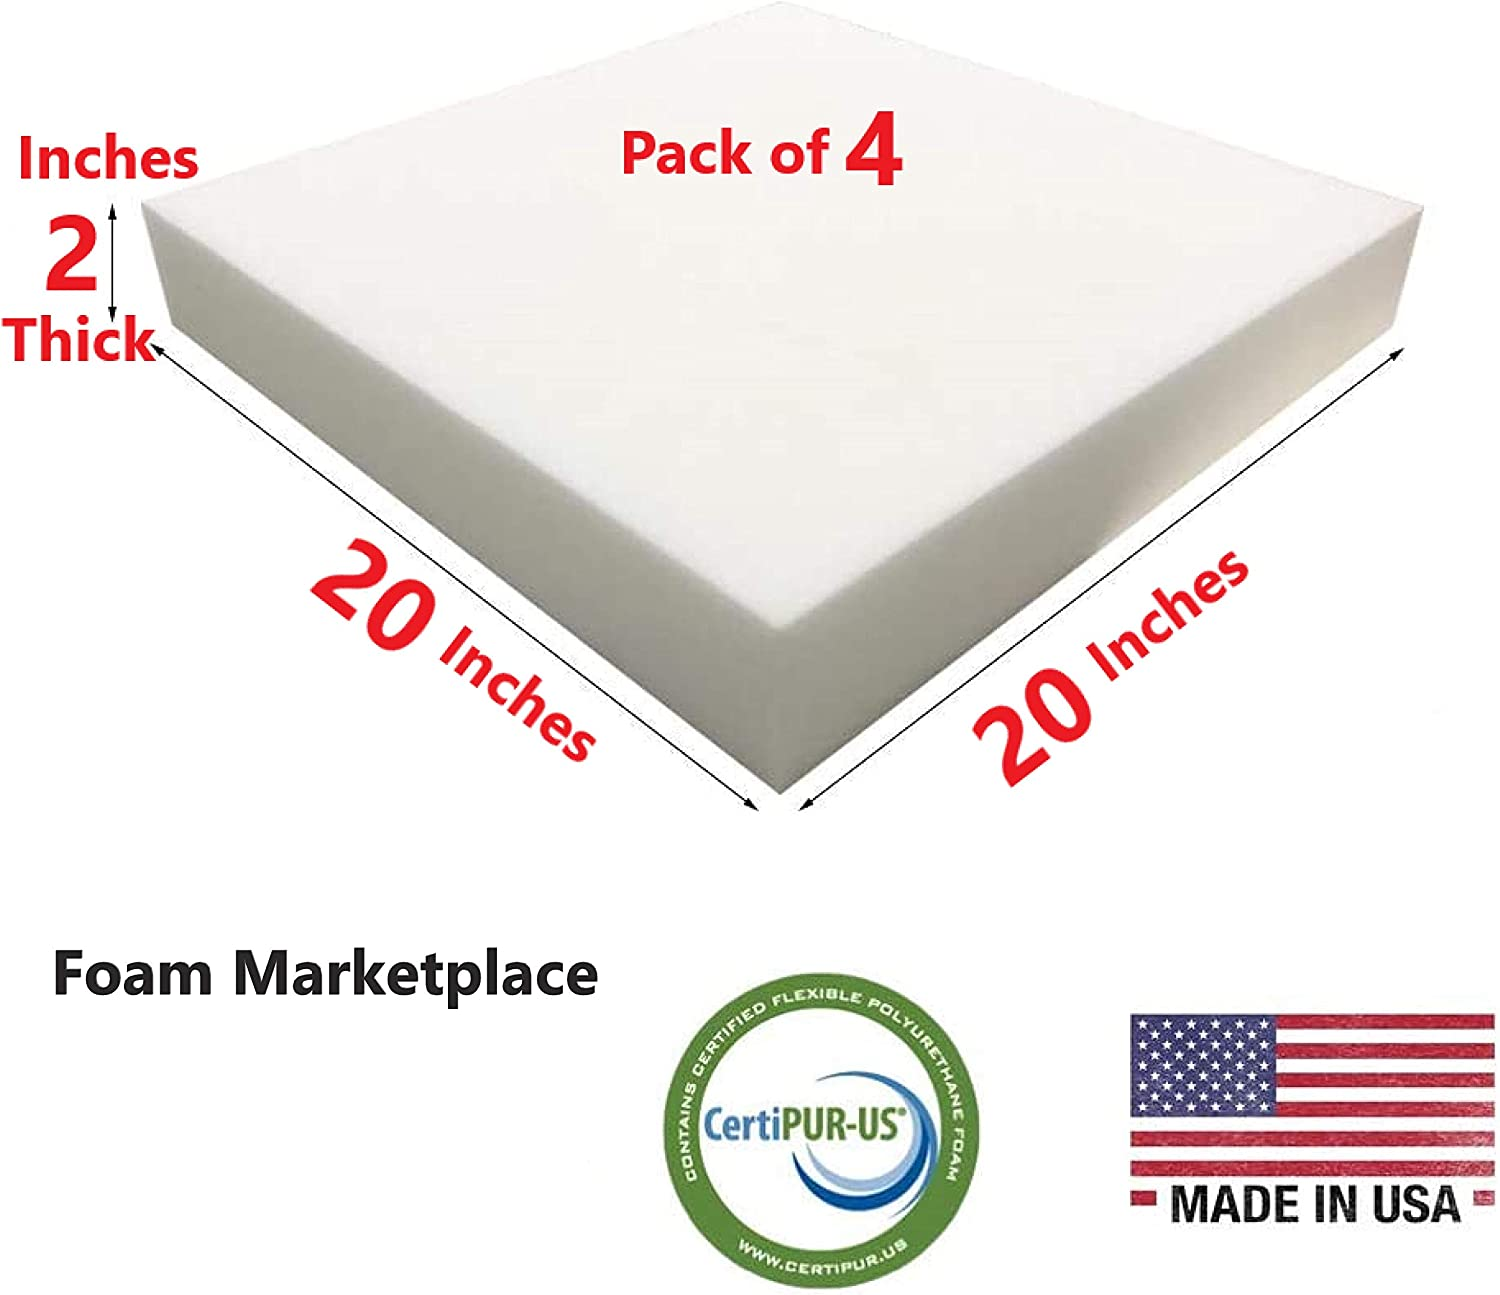 Set of 4 Foam Marketplace High Density Upholstery Foam Length 20 Width 20 Height 2 Inches 1.8lb Density /& 46 ILD Easy to Customize Polyurethane Couch Cushion Replacement for Indoor Outdoor Furniture